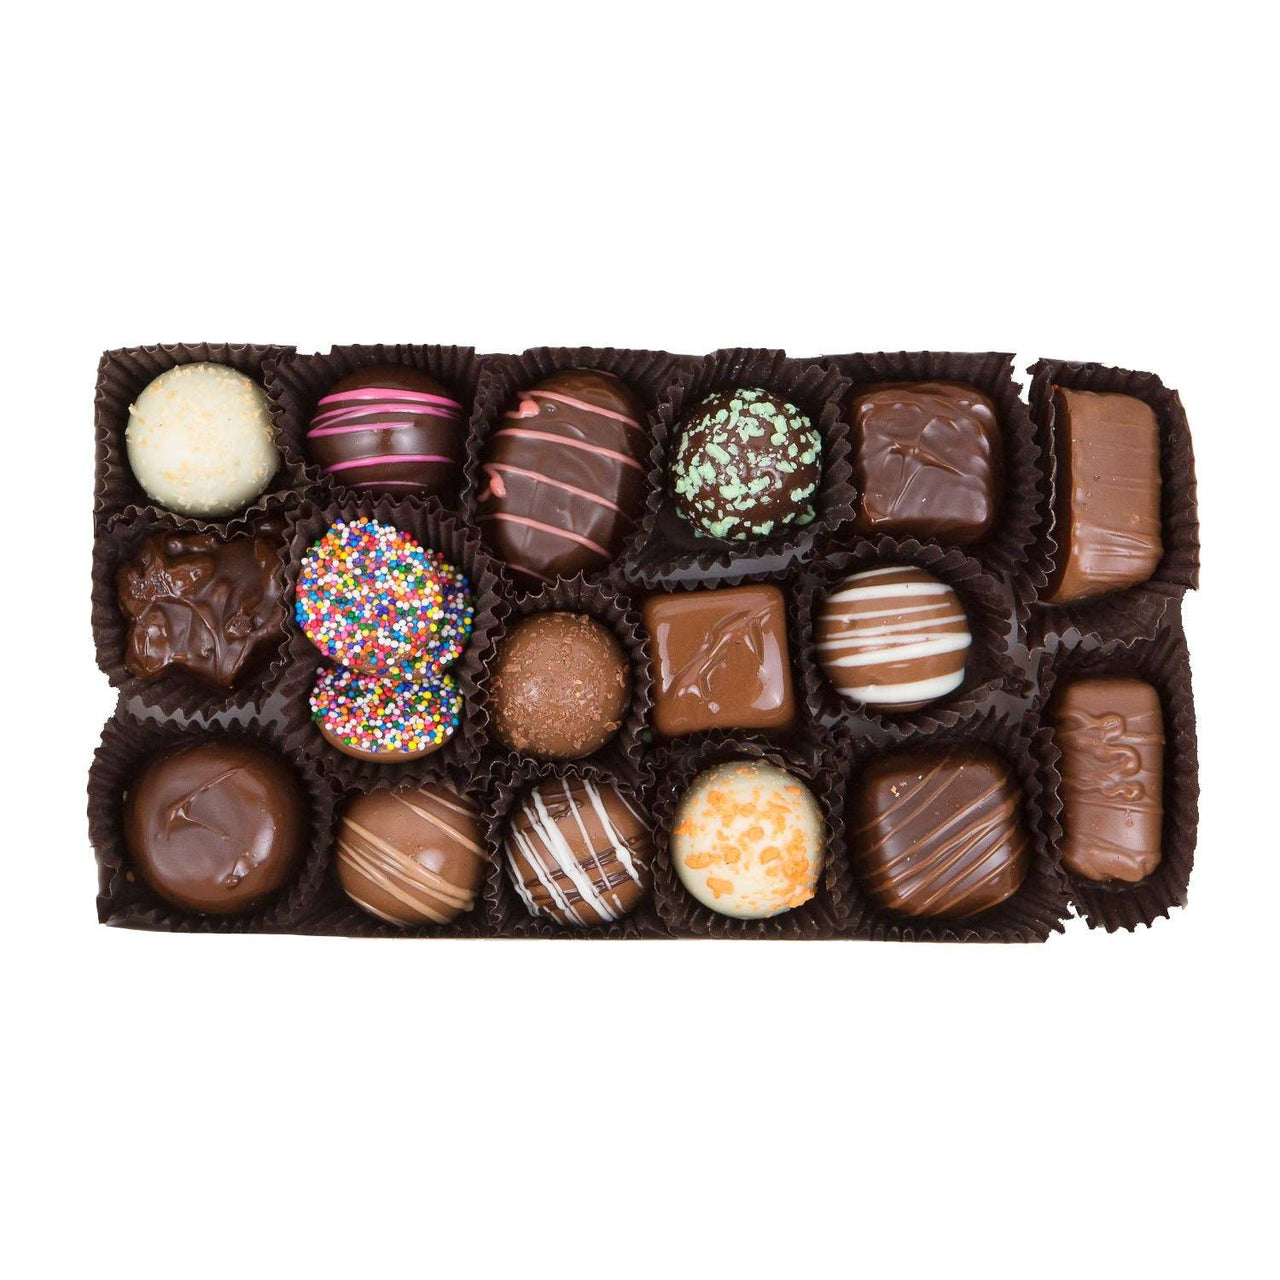 Empowerment Gifts - Assorted Chocolate Gift Box - Jackie's Chocolate